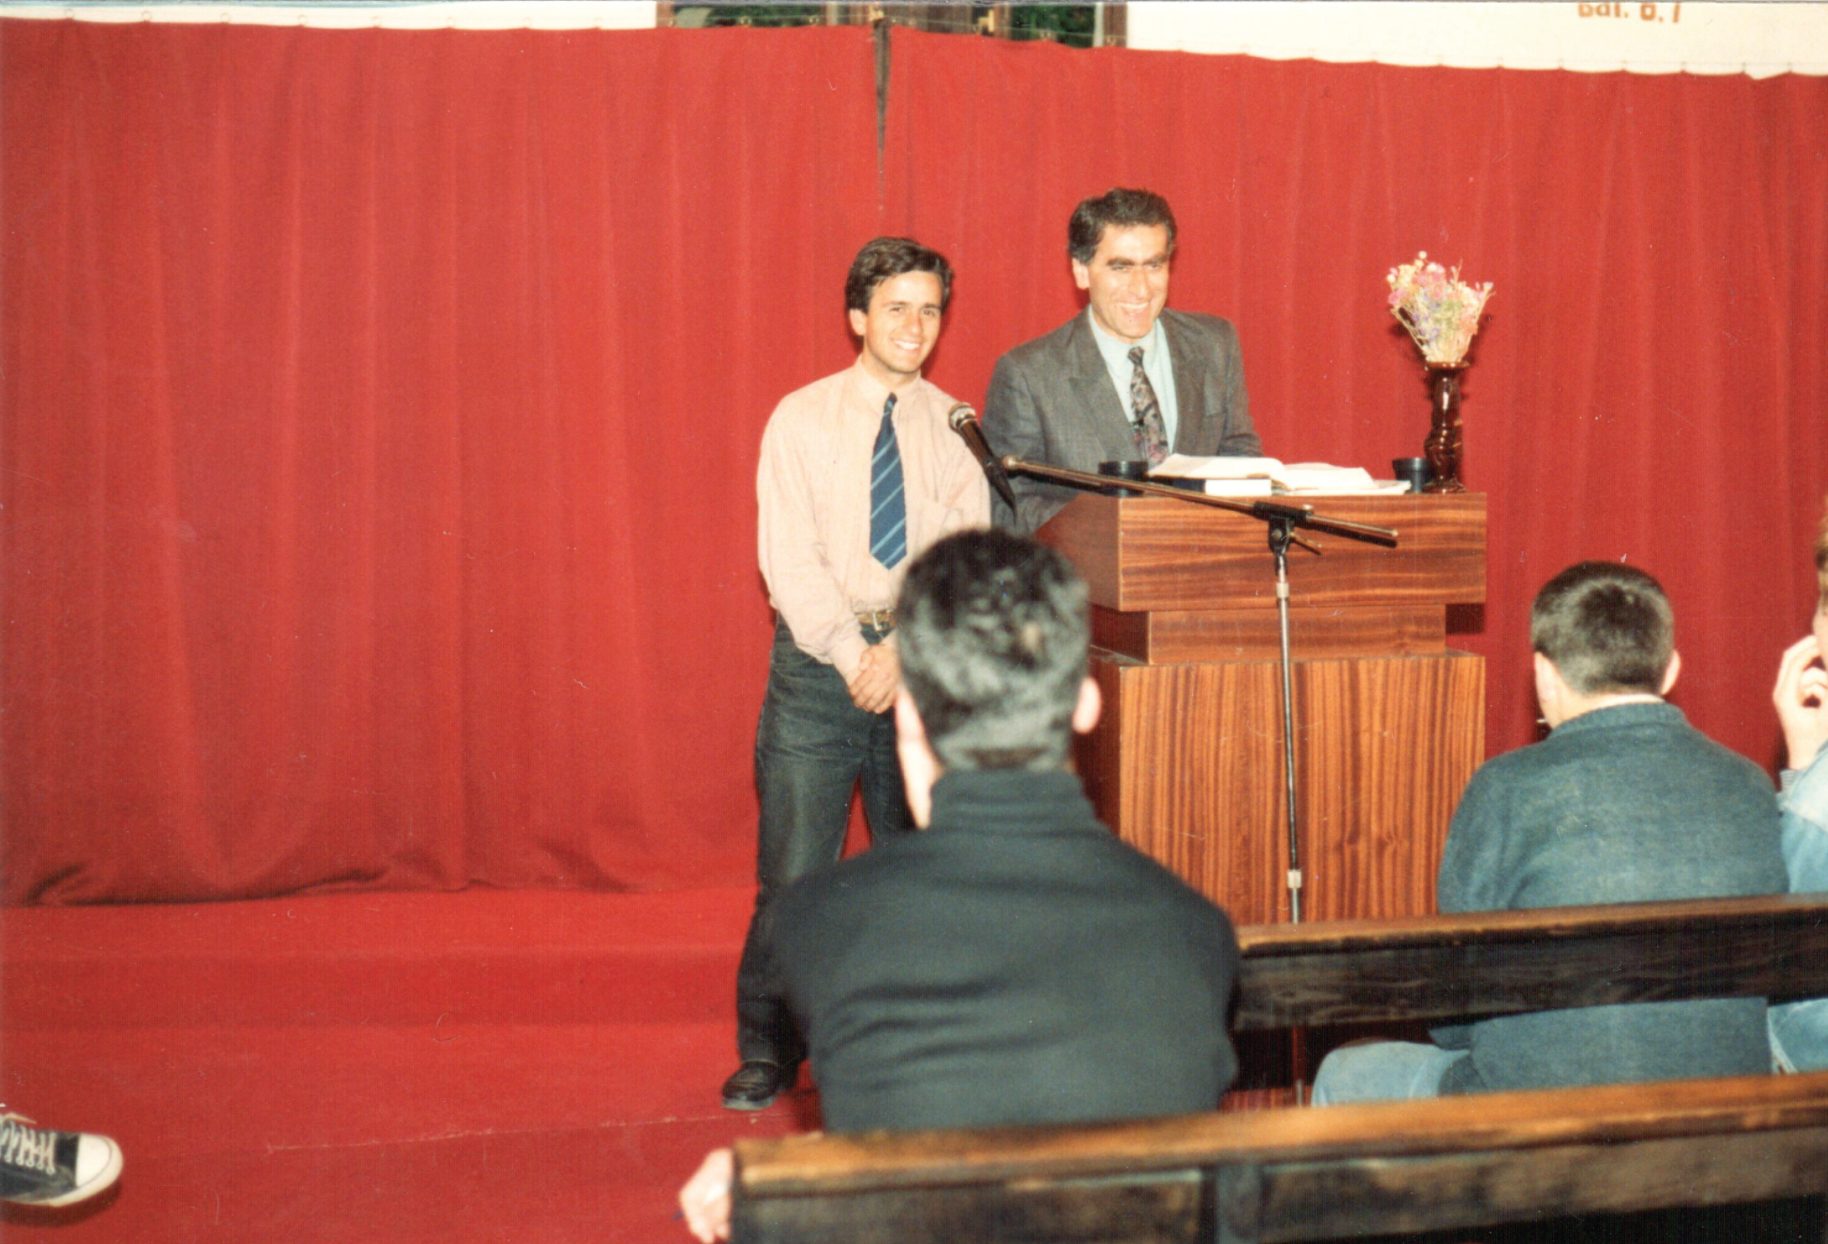 Georges preaching at an evangelistic revival